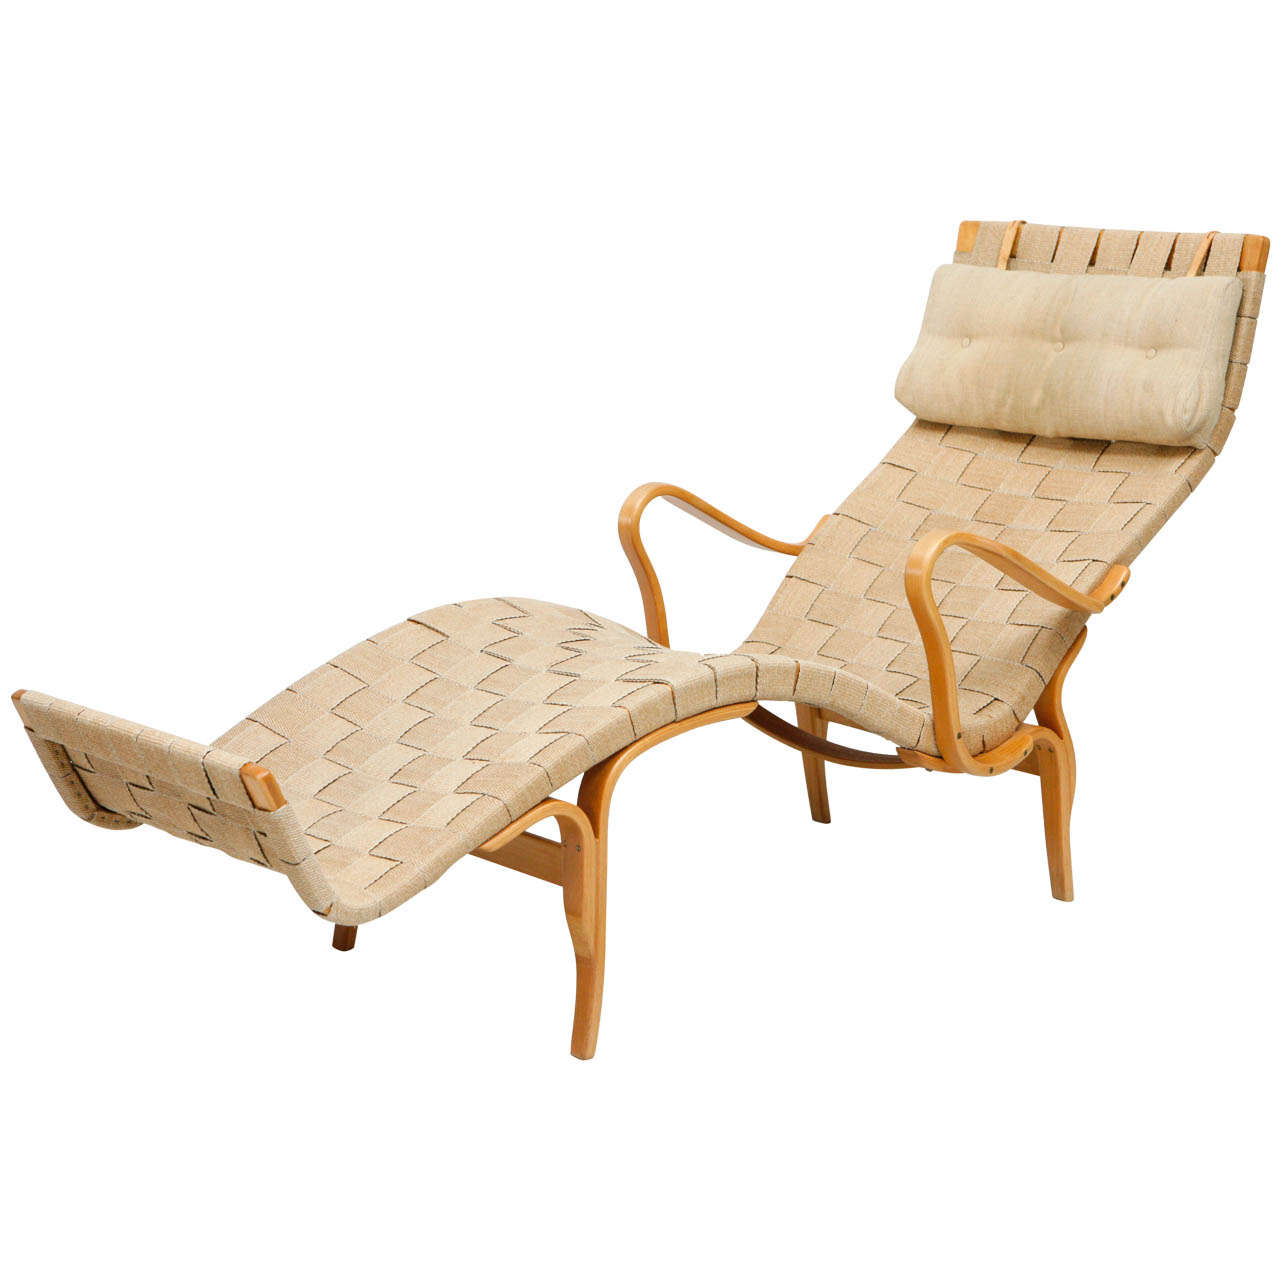 Bruno mathsson pernilla chaise longue for sale at 1stdibs for Chaise for sale